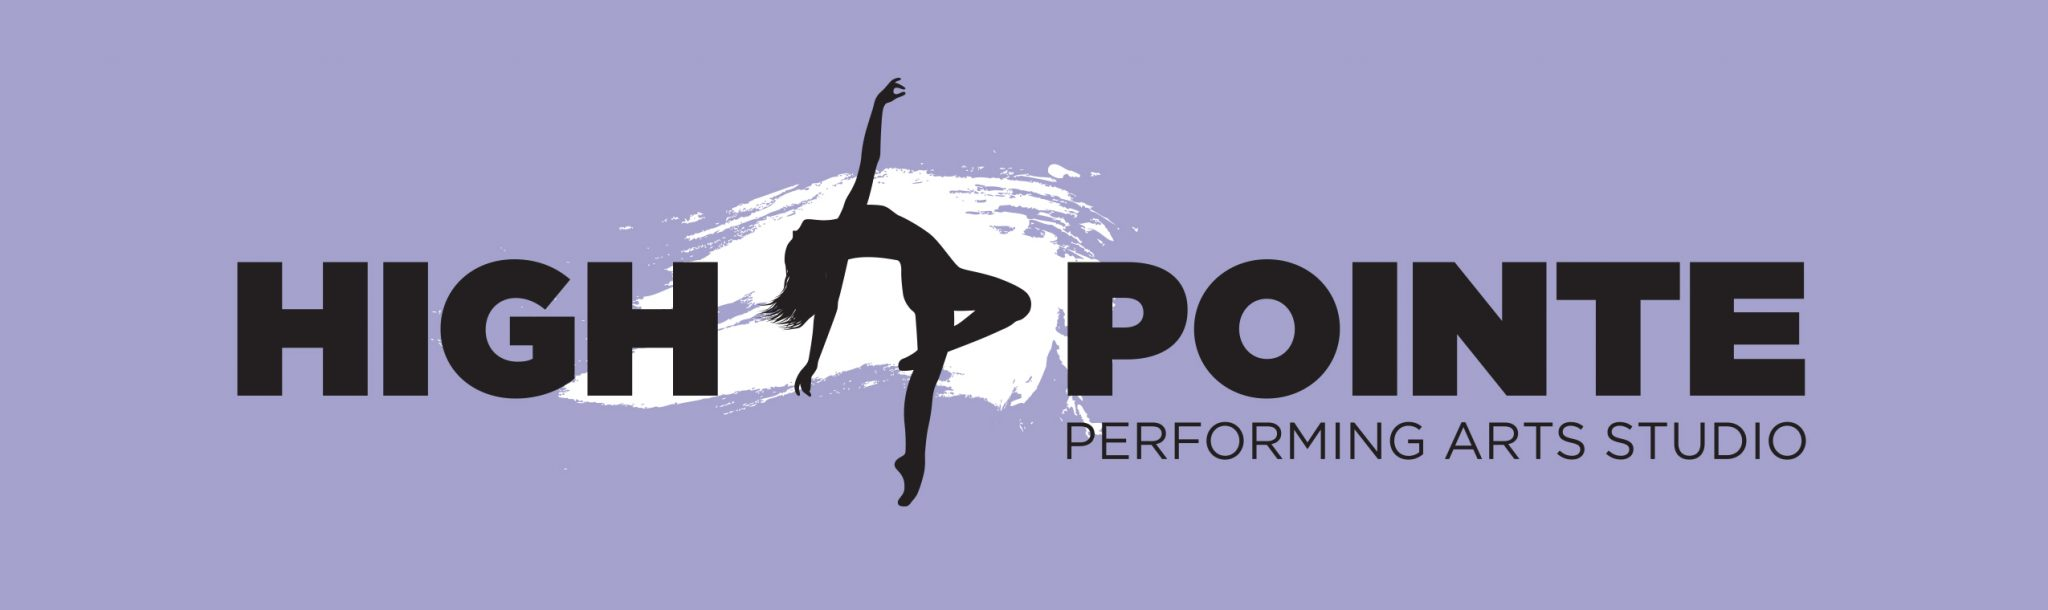 High Pointe Dance Studio | Performing Arts Studio